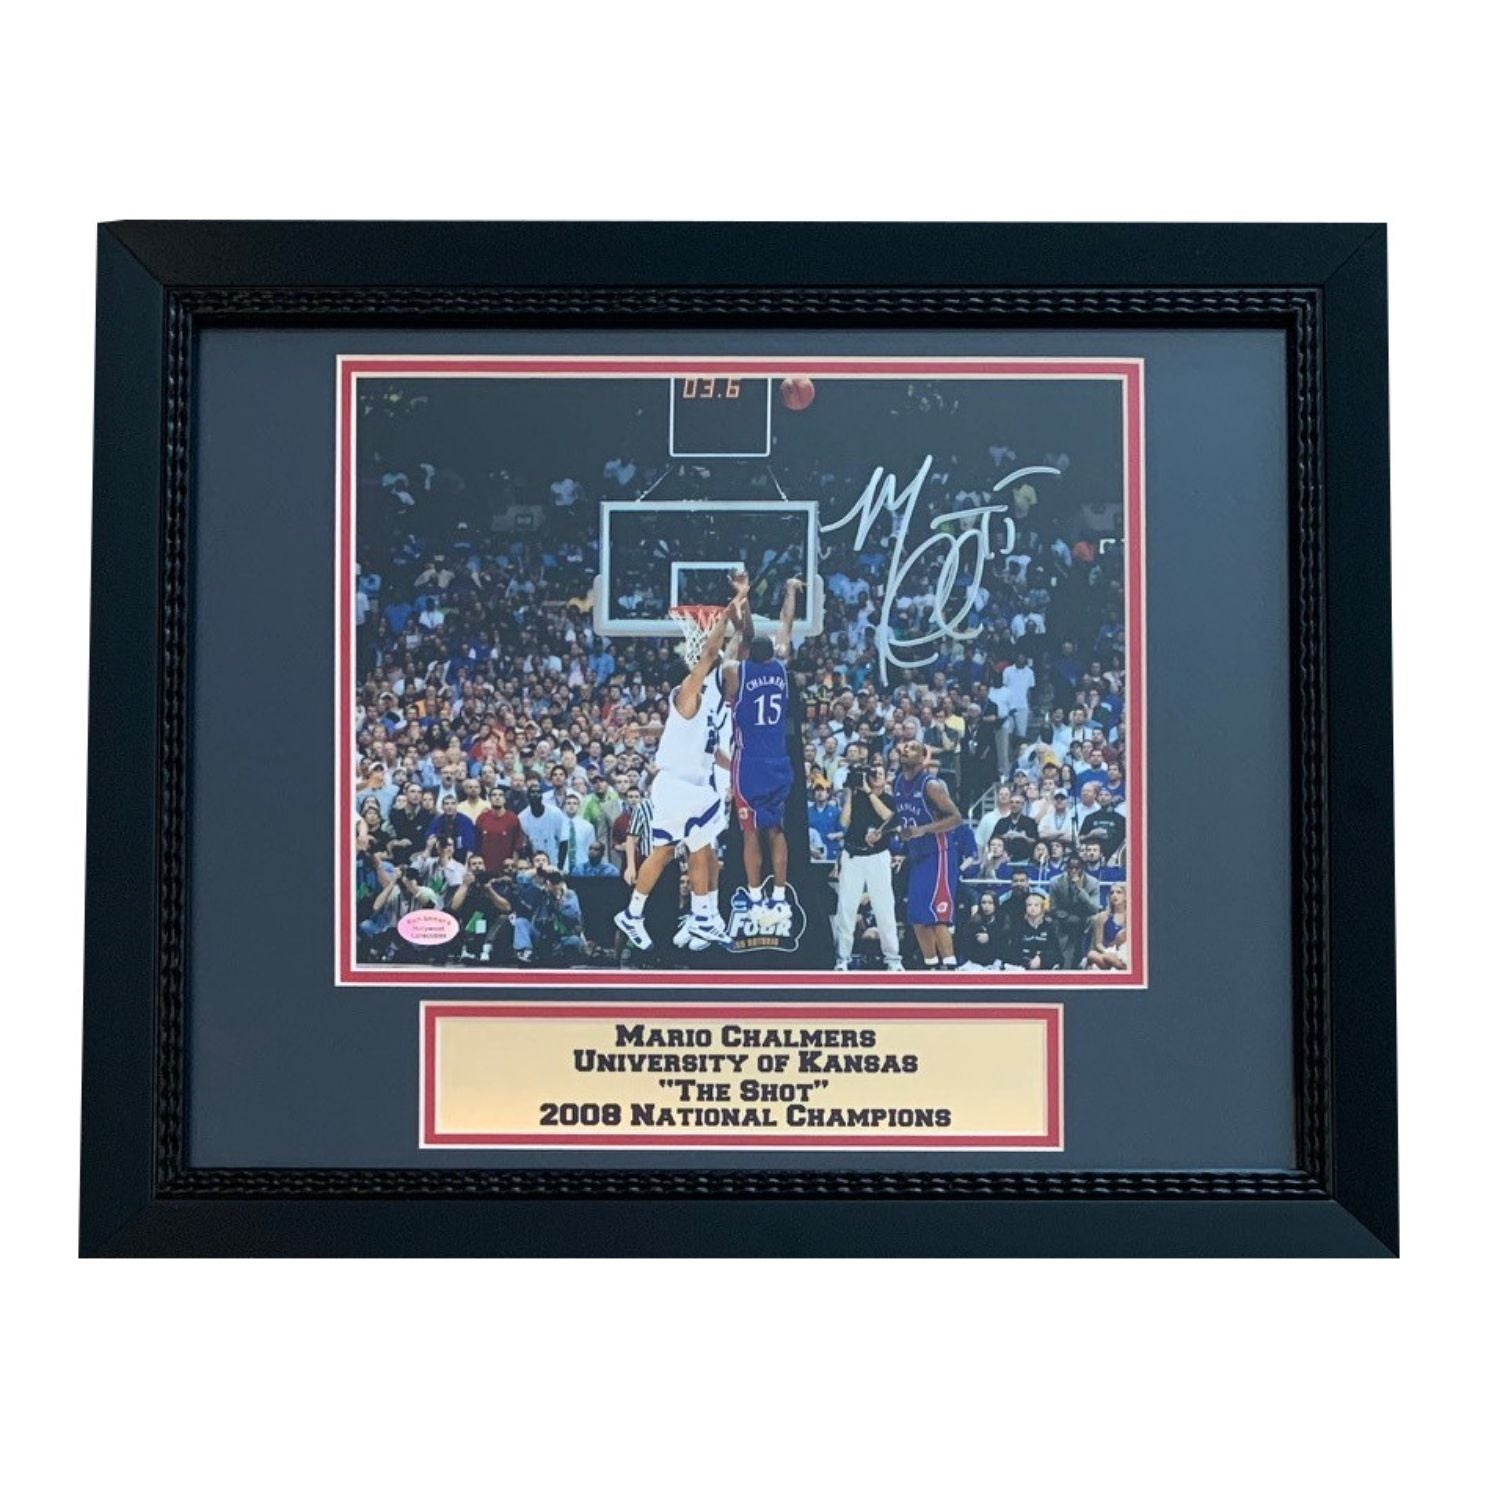 Mario Chalmers Autographed Kansas Jayhawks THE SHOT Signed Framed 8x10 Basketball Photo-Powers Sports Memorabilia